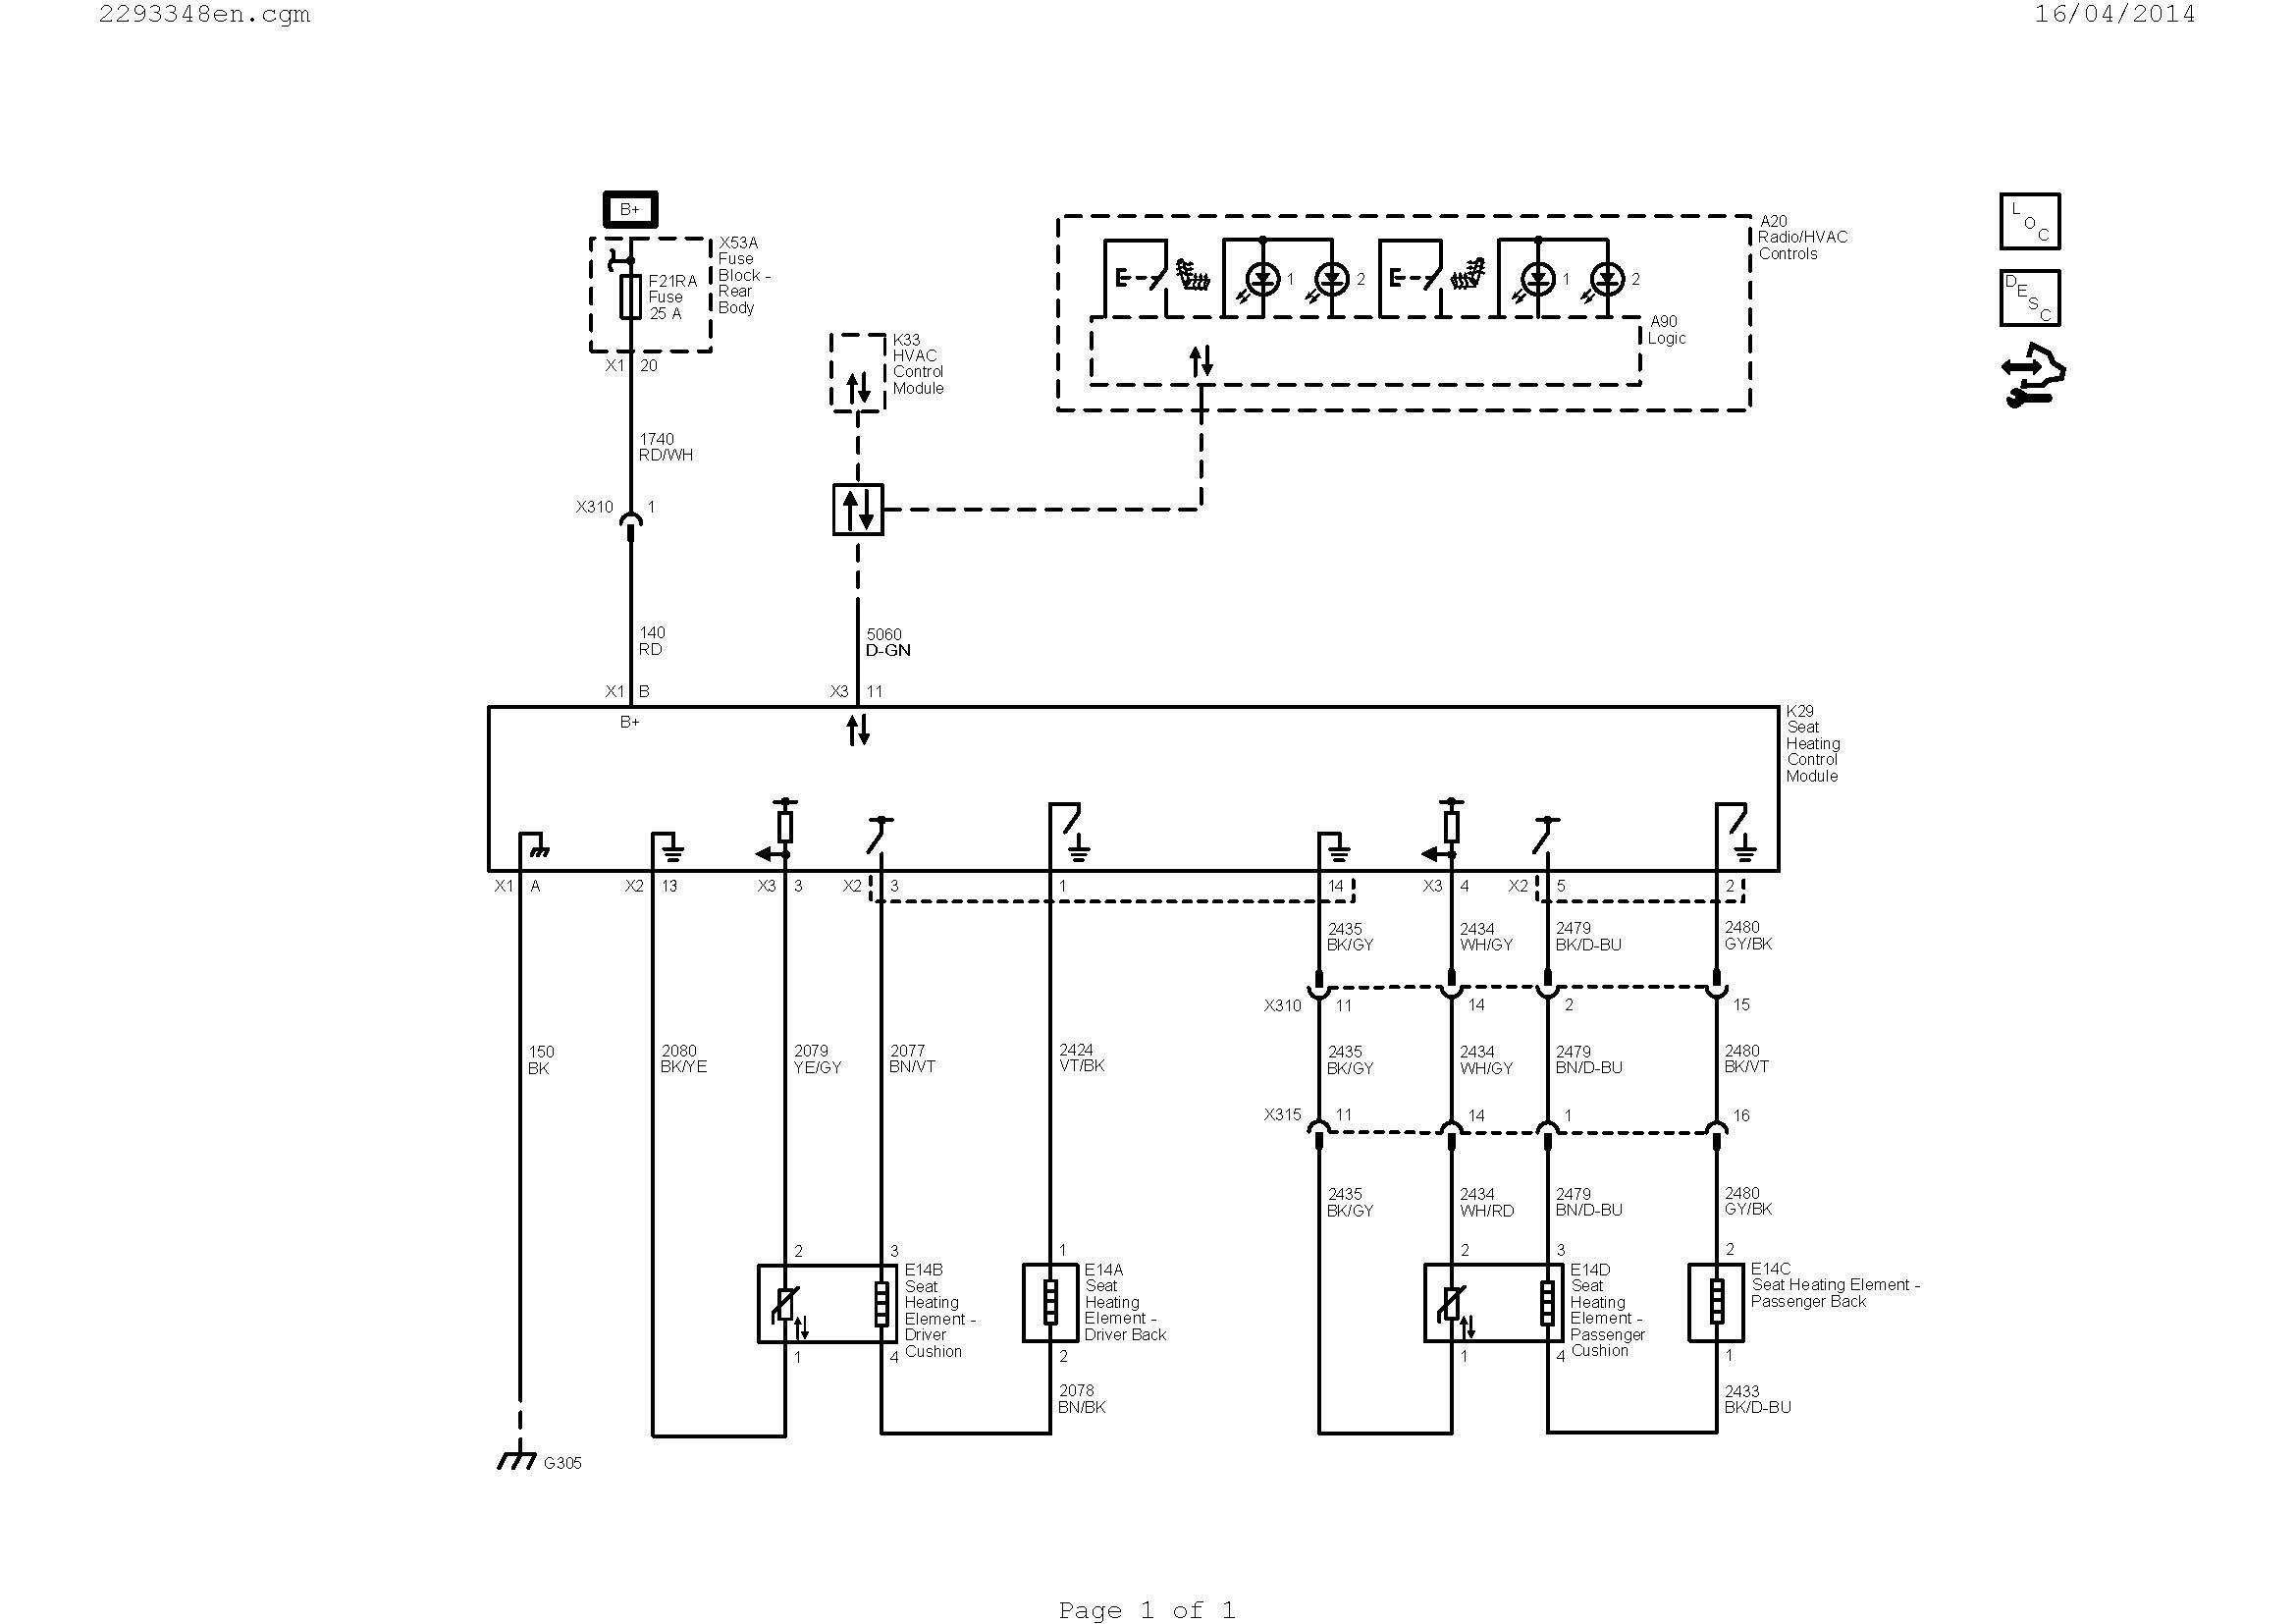 bose amp wiring diagram Download-Wiring Diagram Amplifier Save Wiring Diagram Ac Valid Hvac Diagram Best Hvac Diagram 0d – 10-t